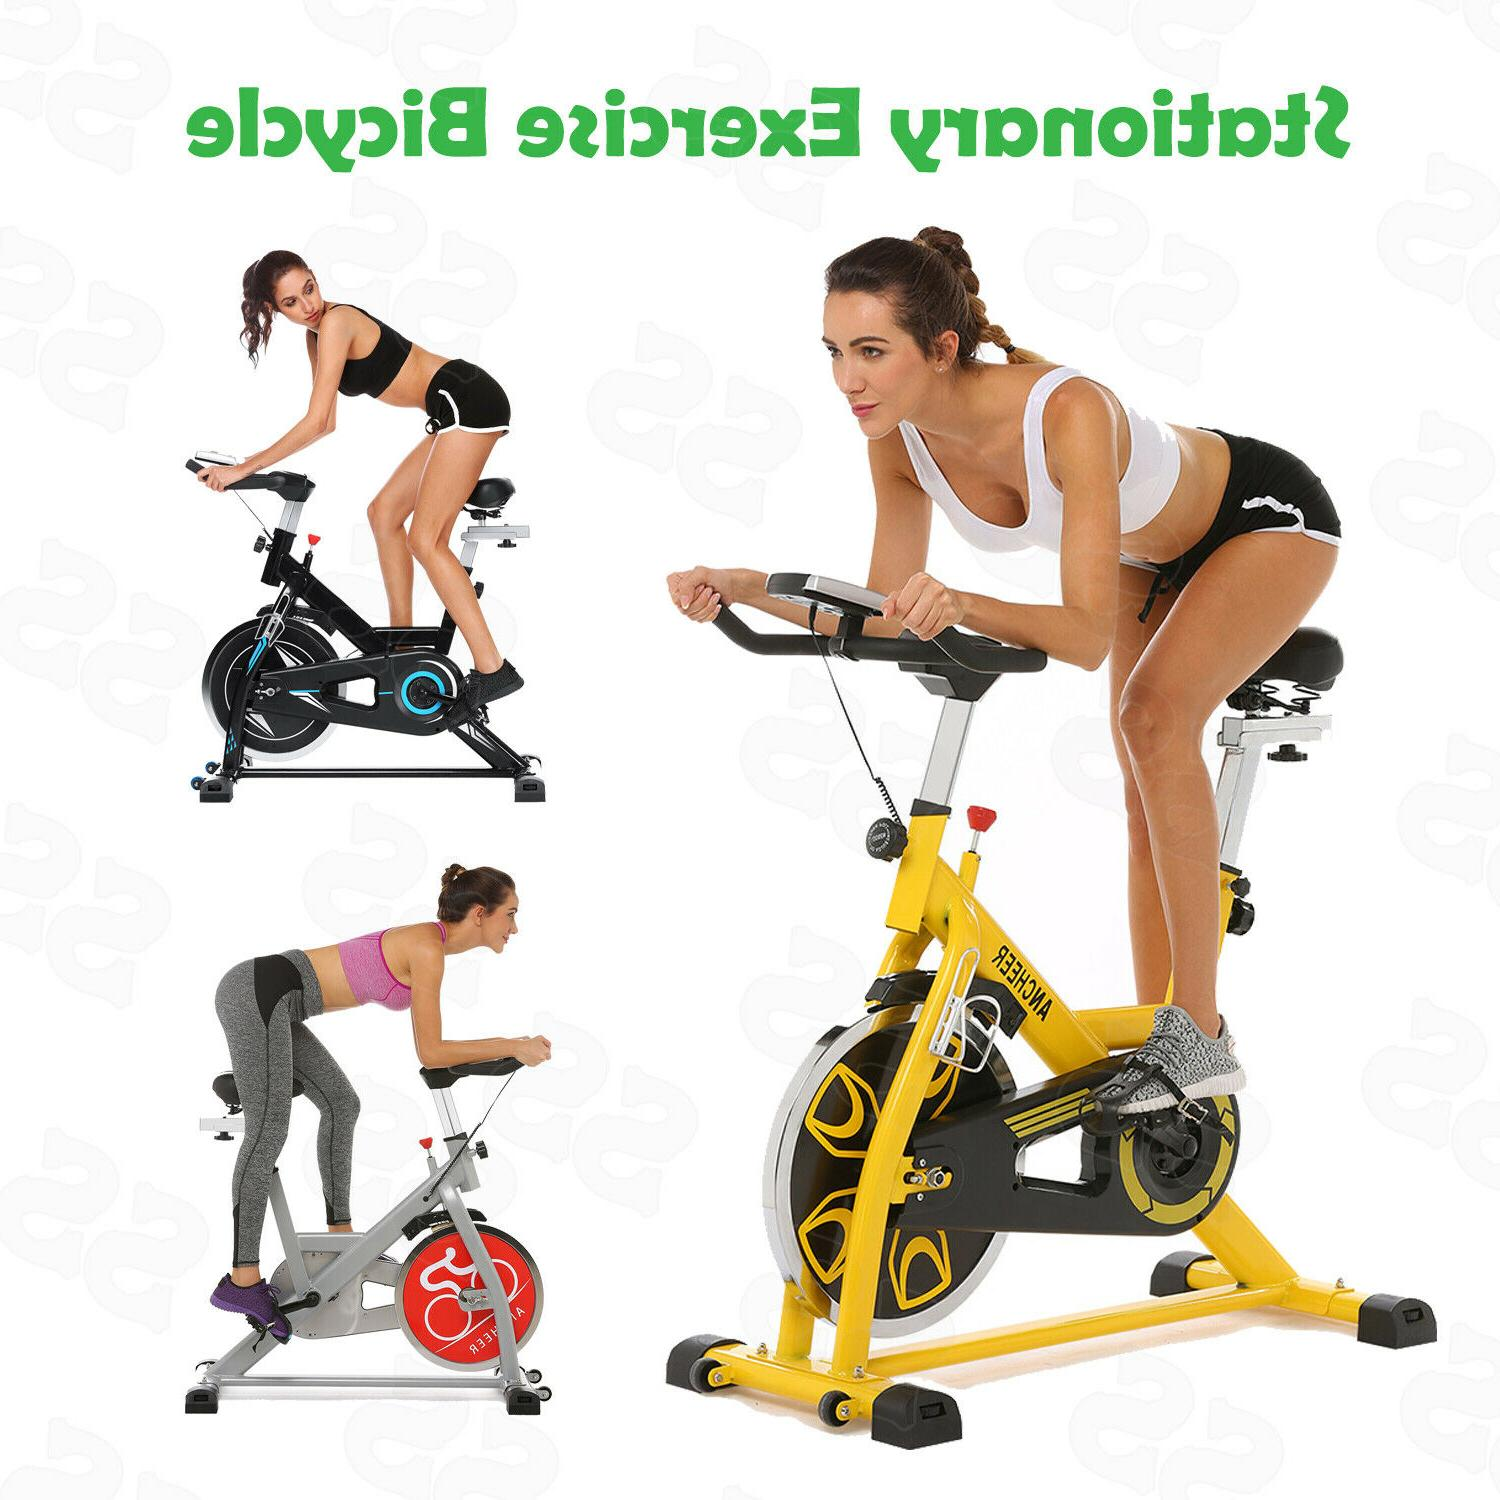 ANCHEER Exercise Bicycle Fitness Gym Stationary Cycling Bike